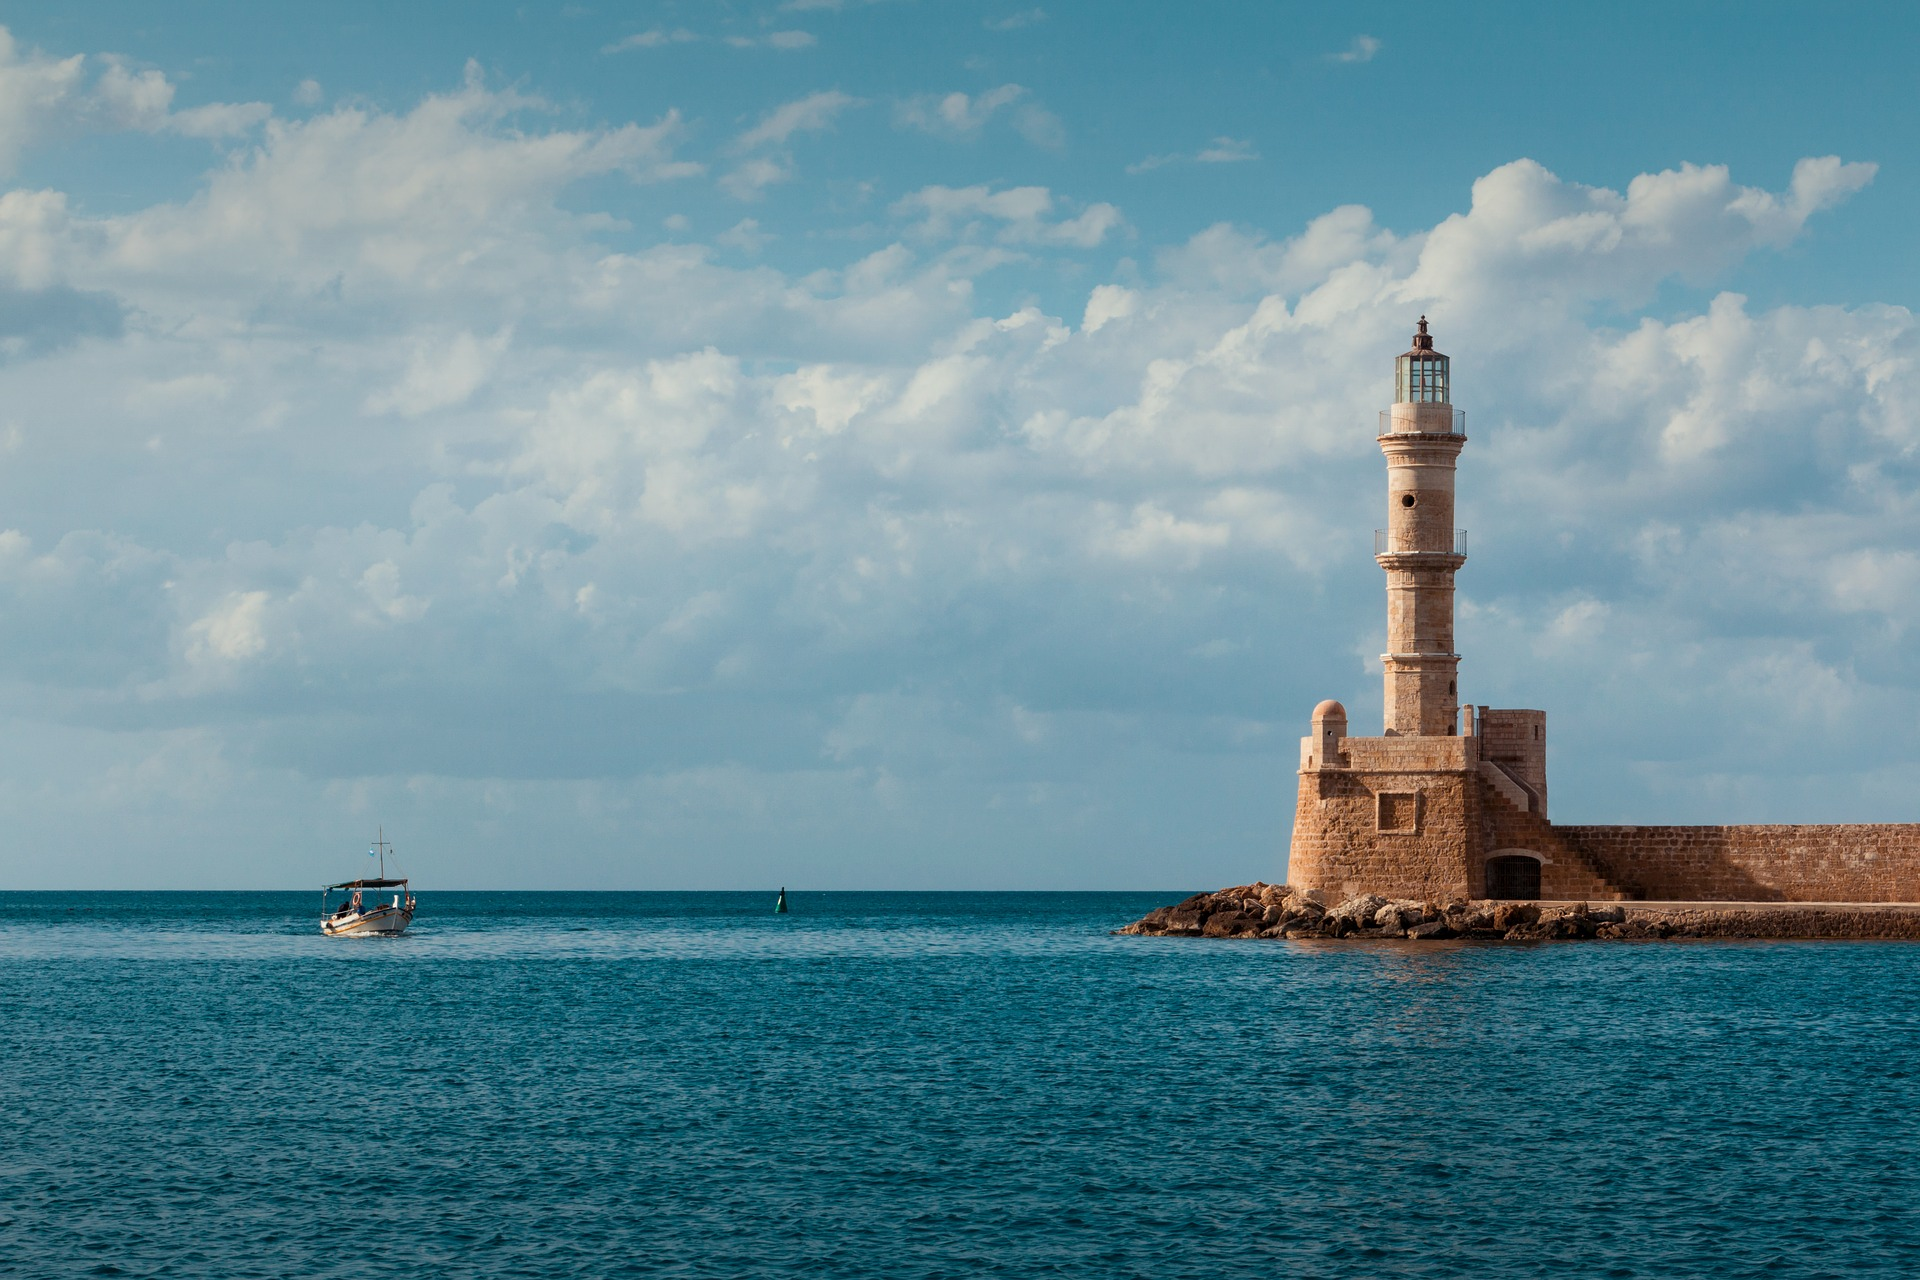 Lighthouse and the fishing boat